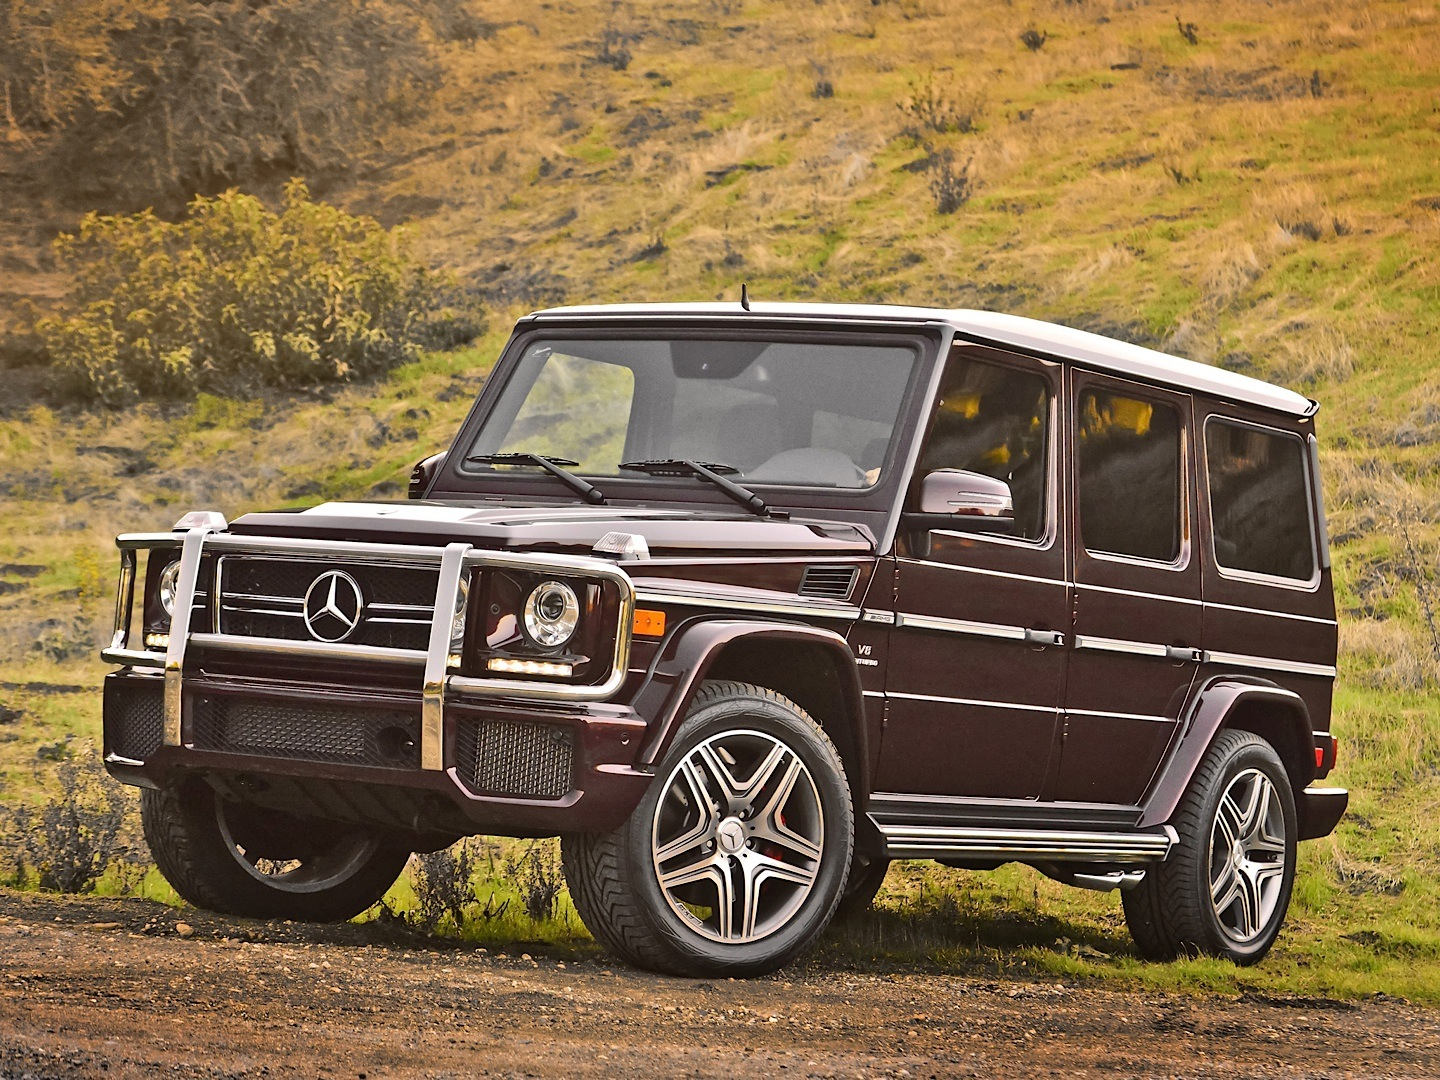 g 63 amg in desert army camouflage is infantry ready. Black Bedroom Furniture Sets. Home Design Ideas